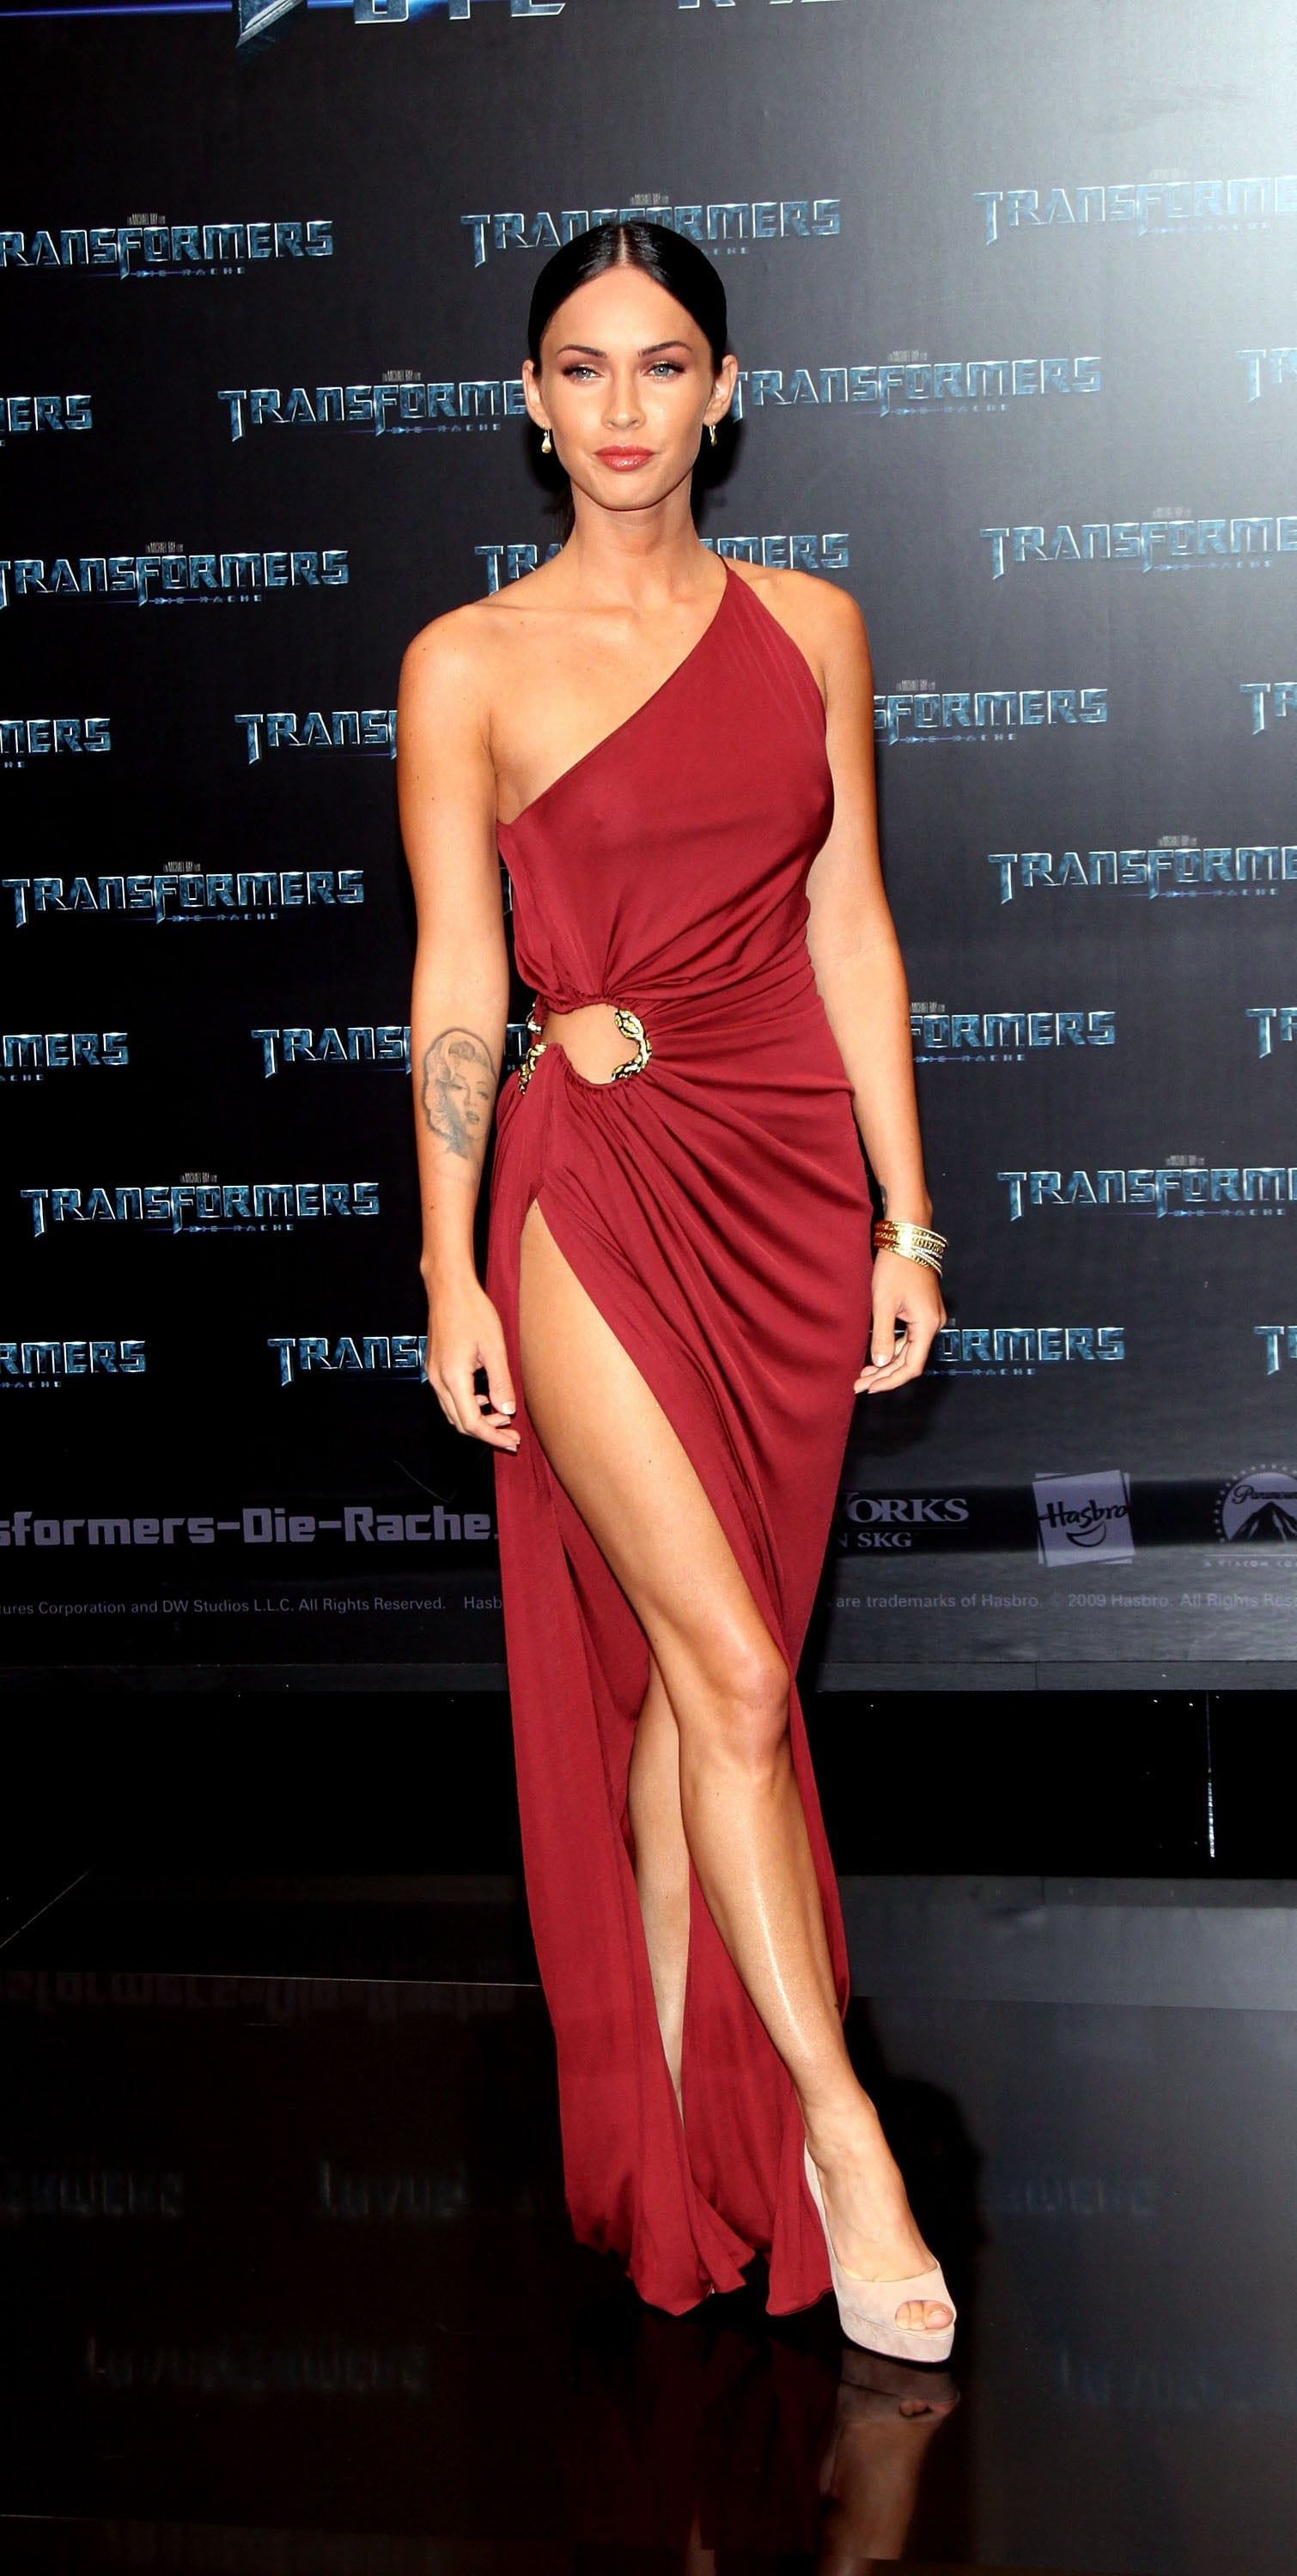 Photo of Megan Fox in Roberto Cavalli at the Transformers 2009: Revenge of the Fallen Germany Premiere